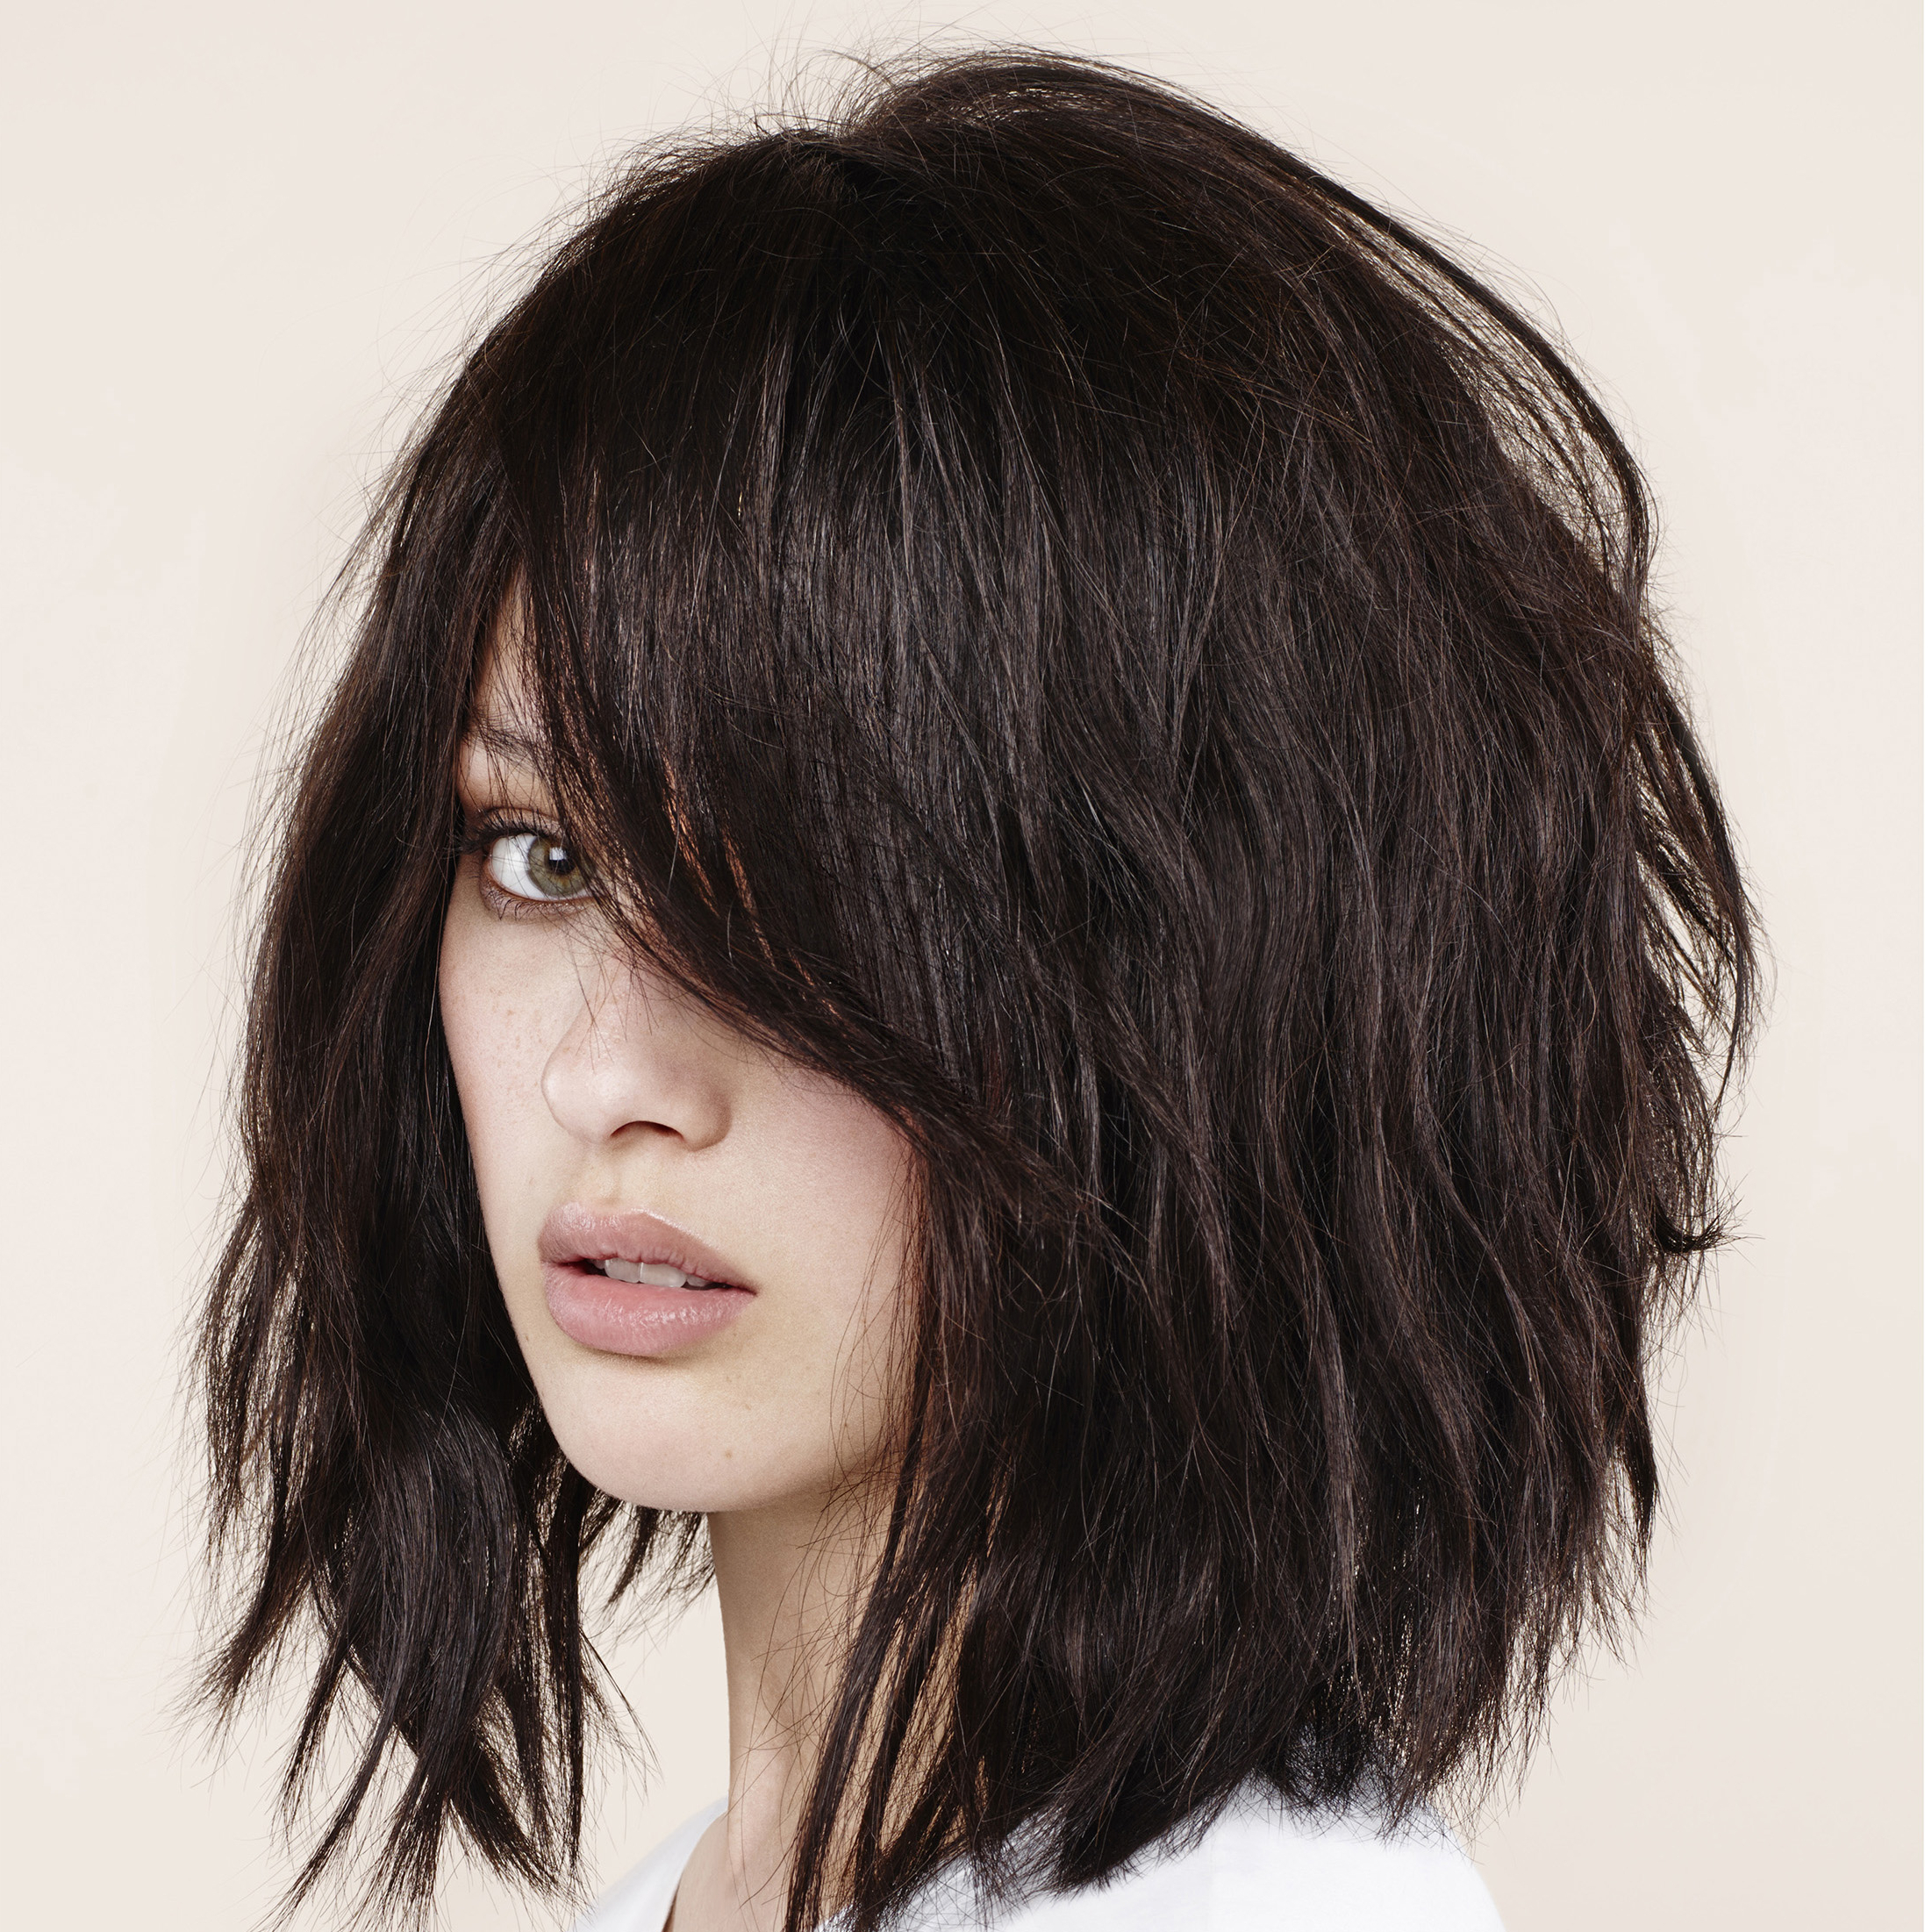 Can A Bob Make You Look Younger Regarding Short Haircuts That Make You Look Younger (View 7 of 25)